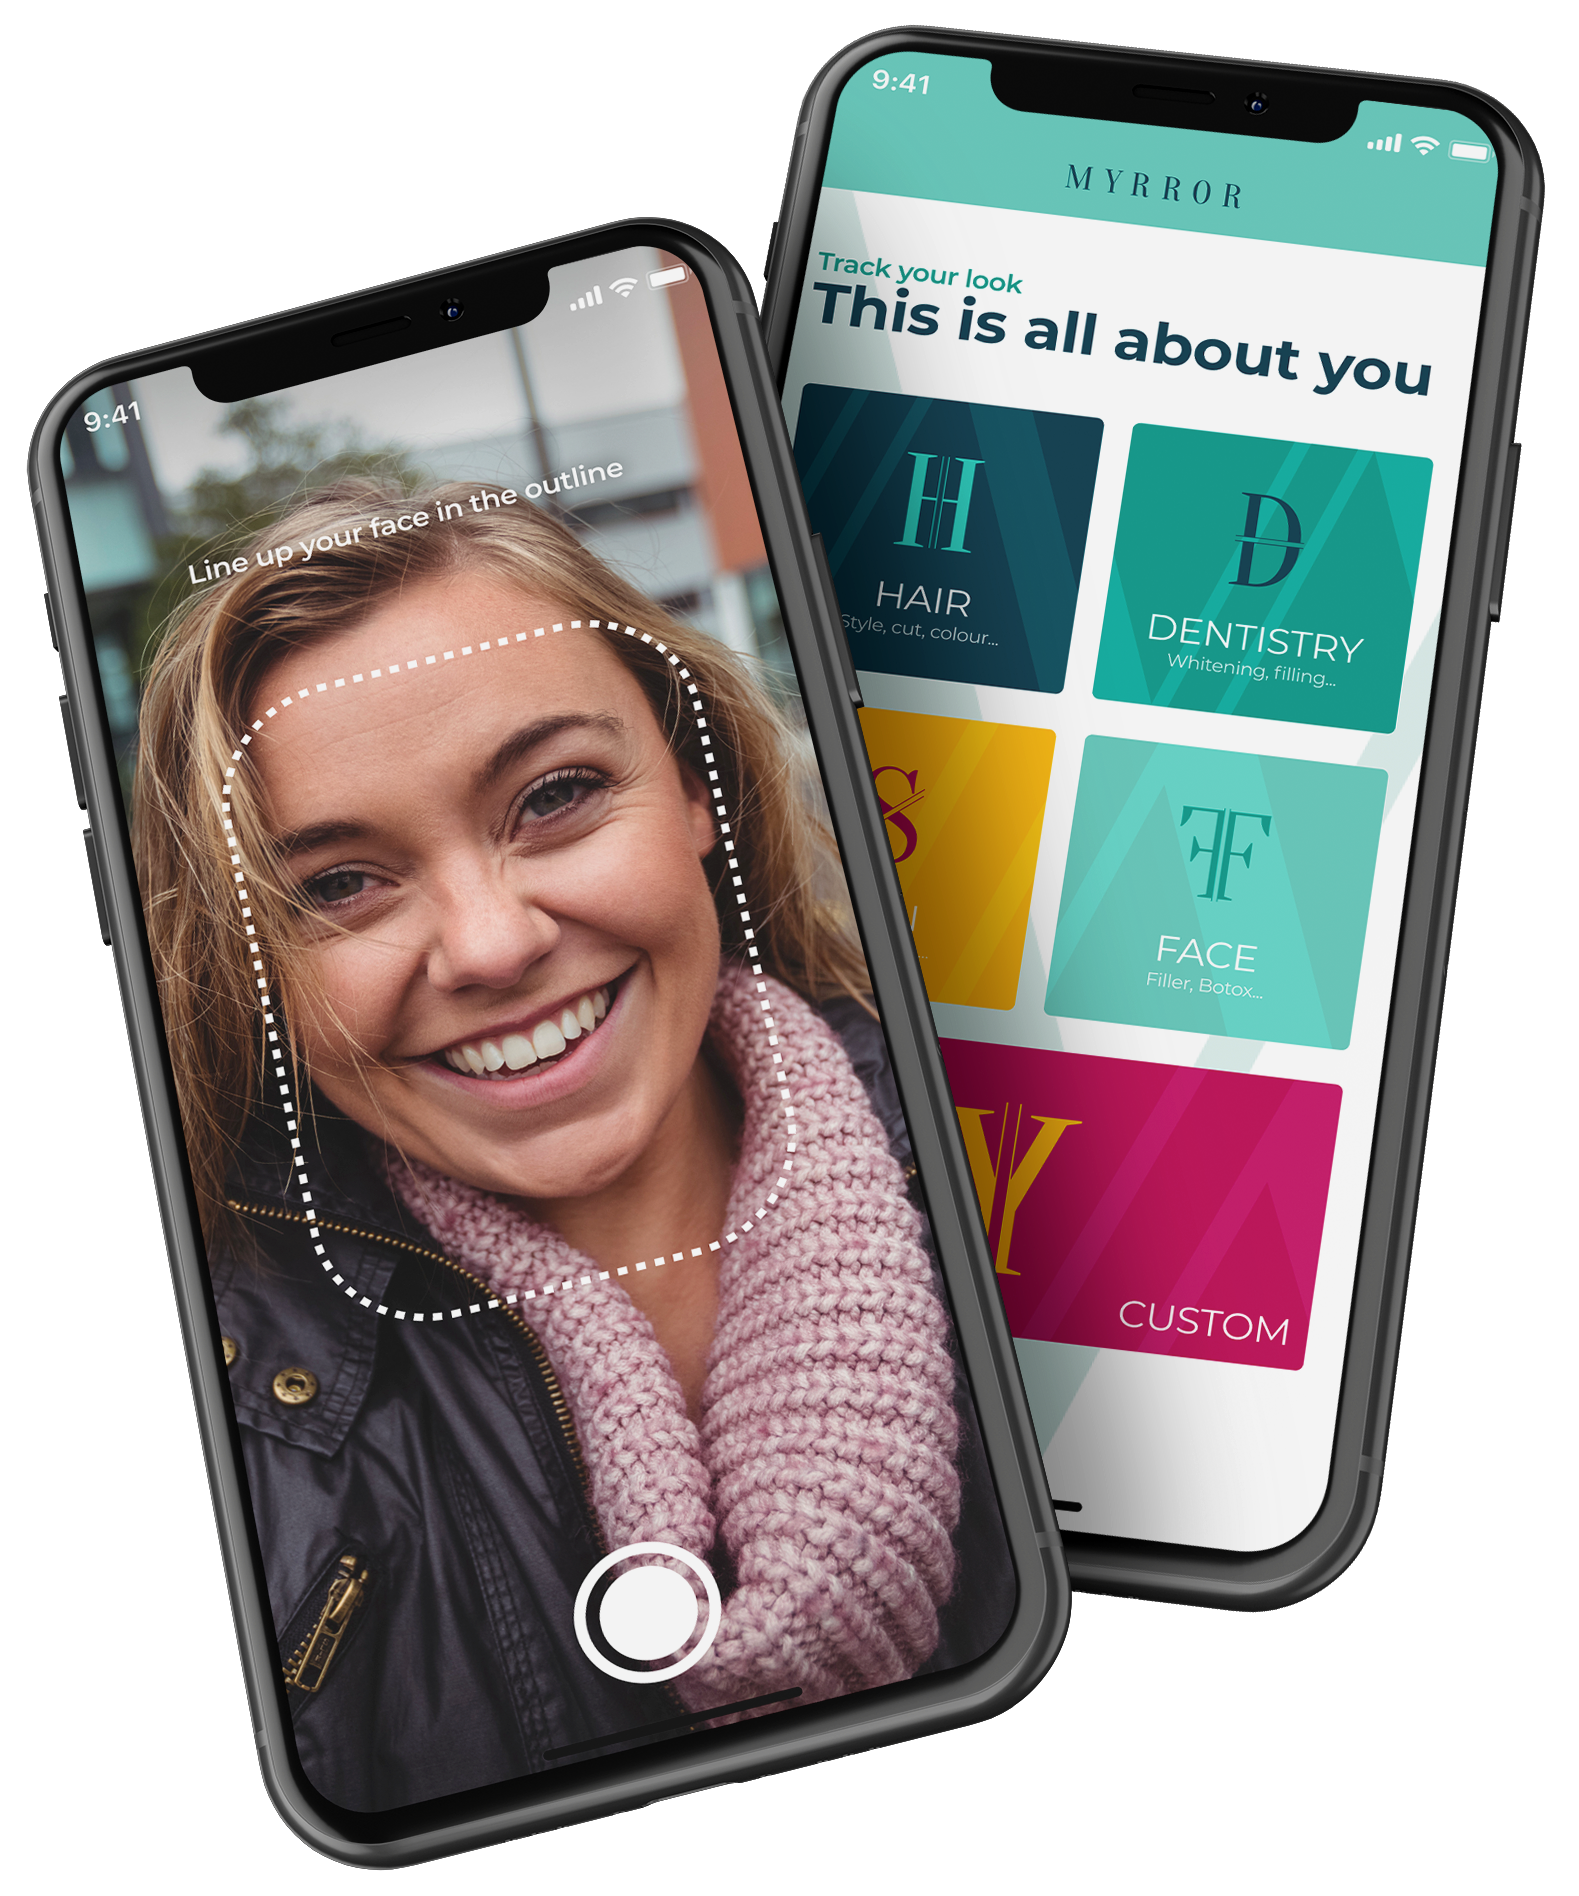 Two mobile phones displaying images from the Myrror App